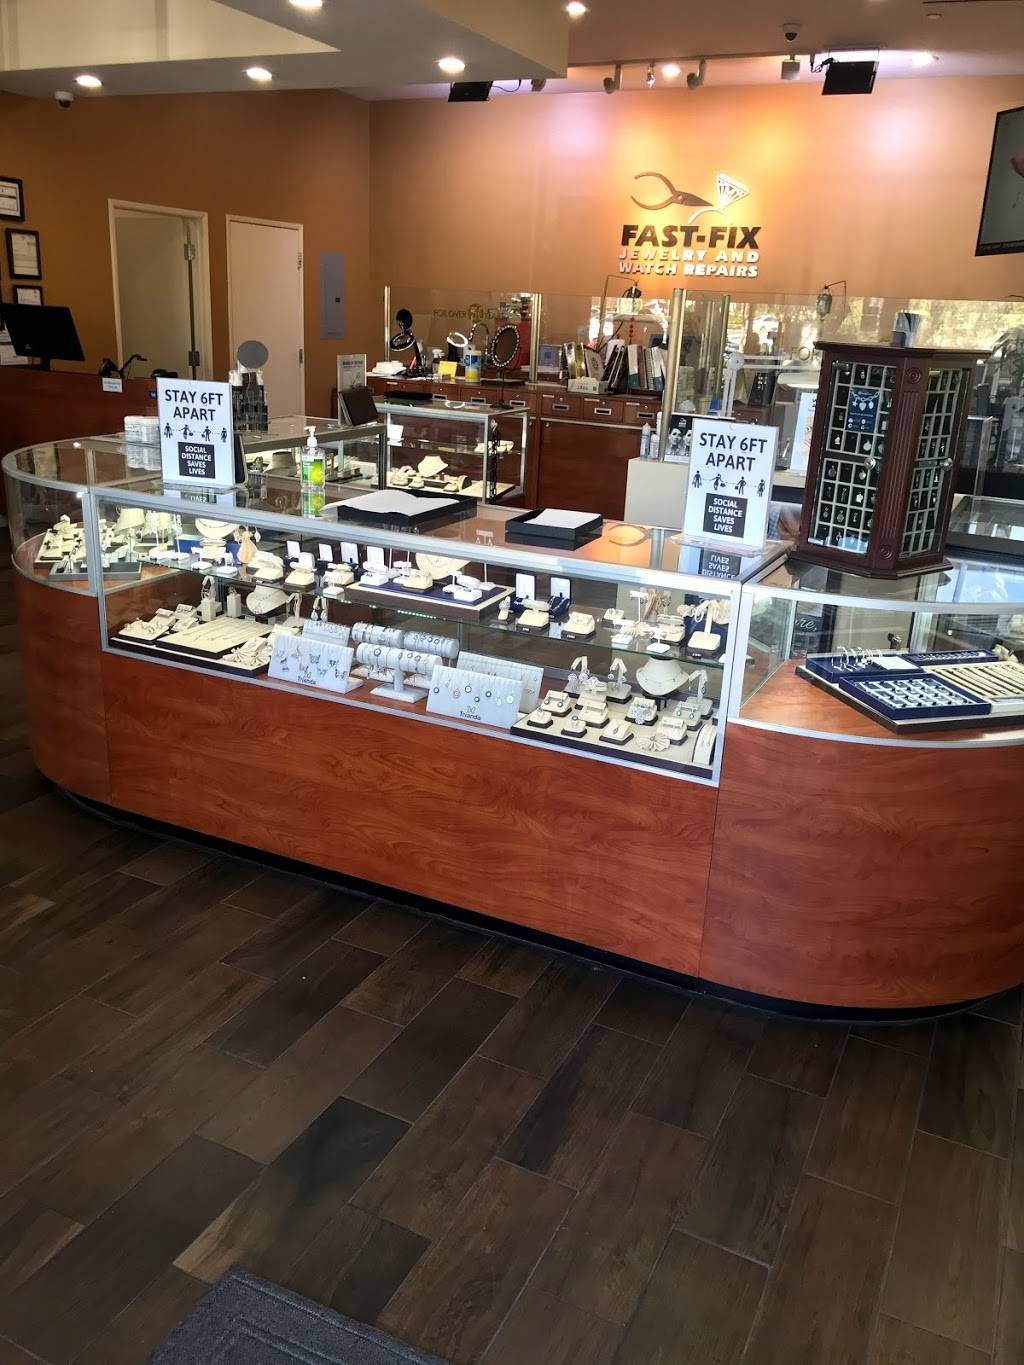 Fast-Fix Irvine Jewelry and Watch Repairs - health  | Photo 6 of 10 | Address: 15333 Culver Dr Ste 900B, Irvine, CA 92604, USA | Phone: (949) 536-5595